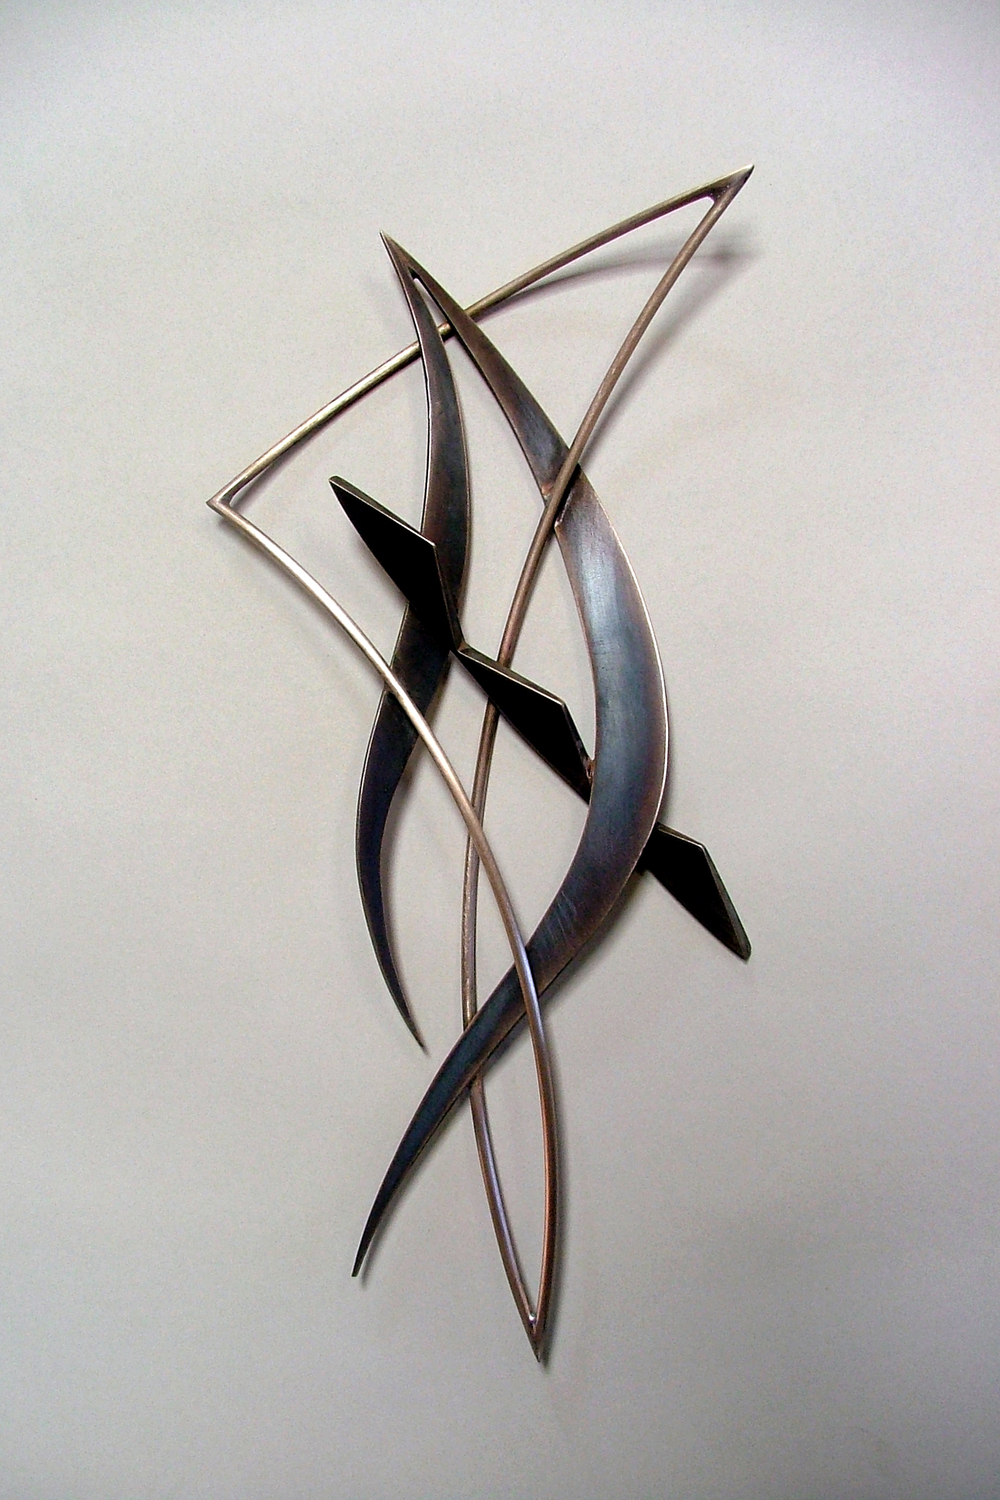 Entropy Series #42, bronze